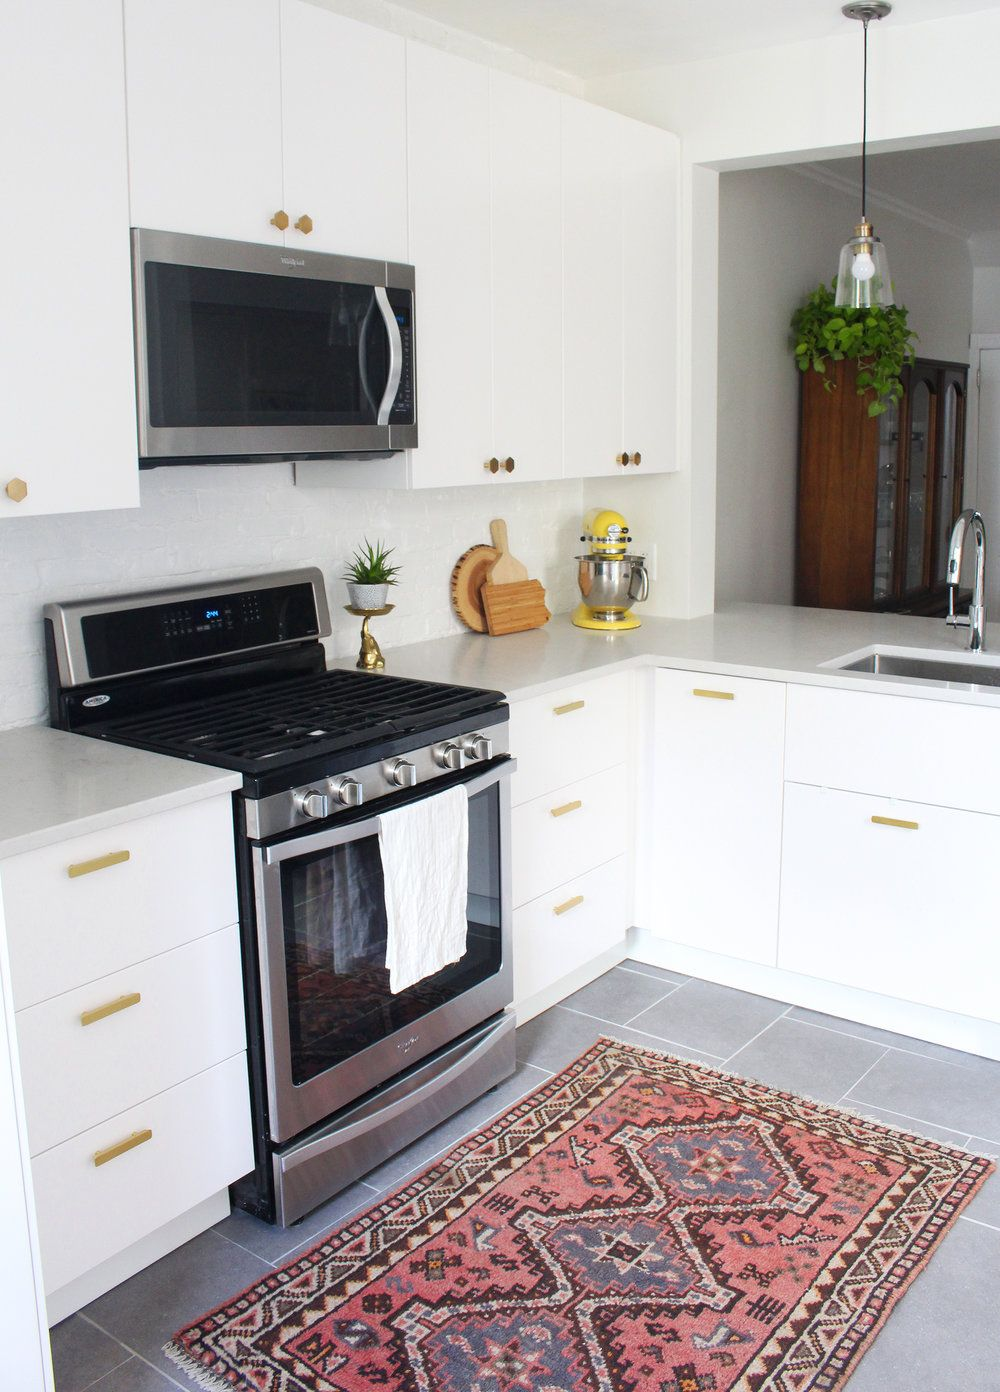 shop the look of this small, modern ikea kitchen (veddinge